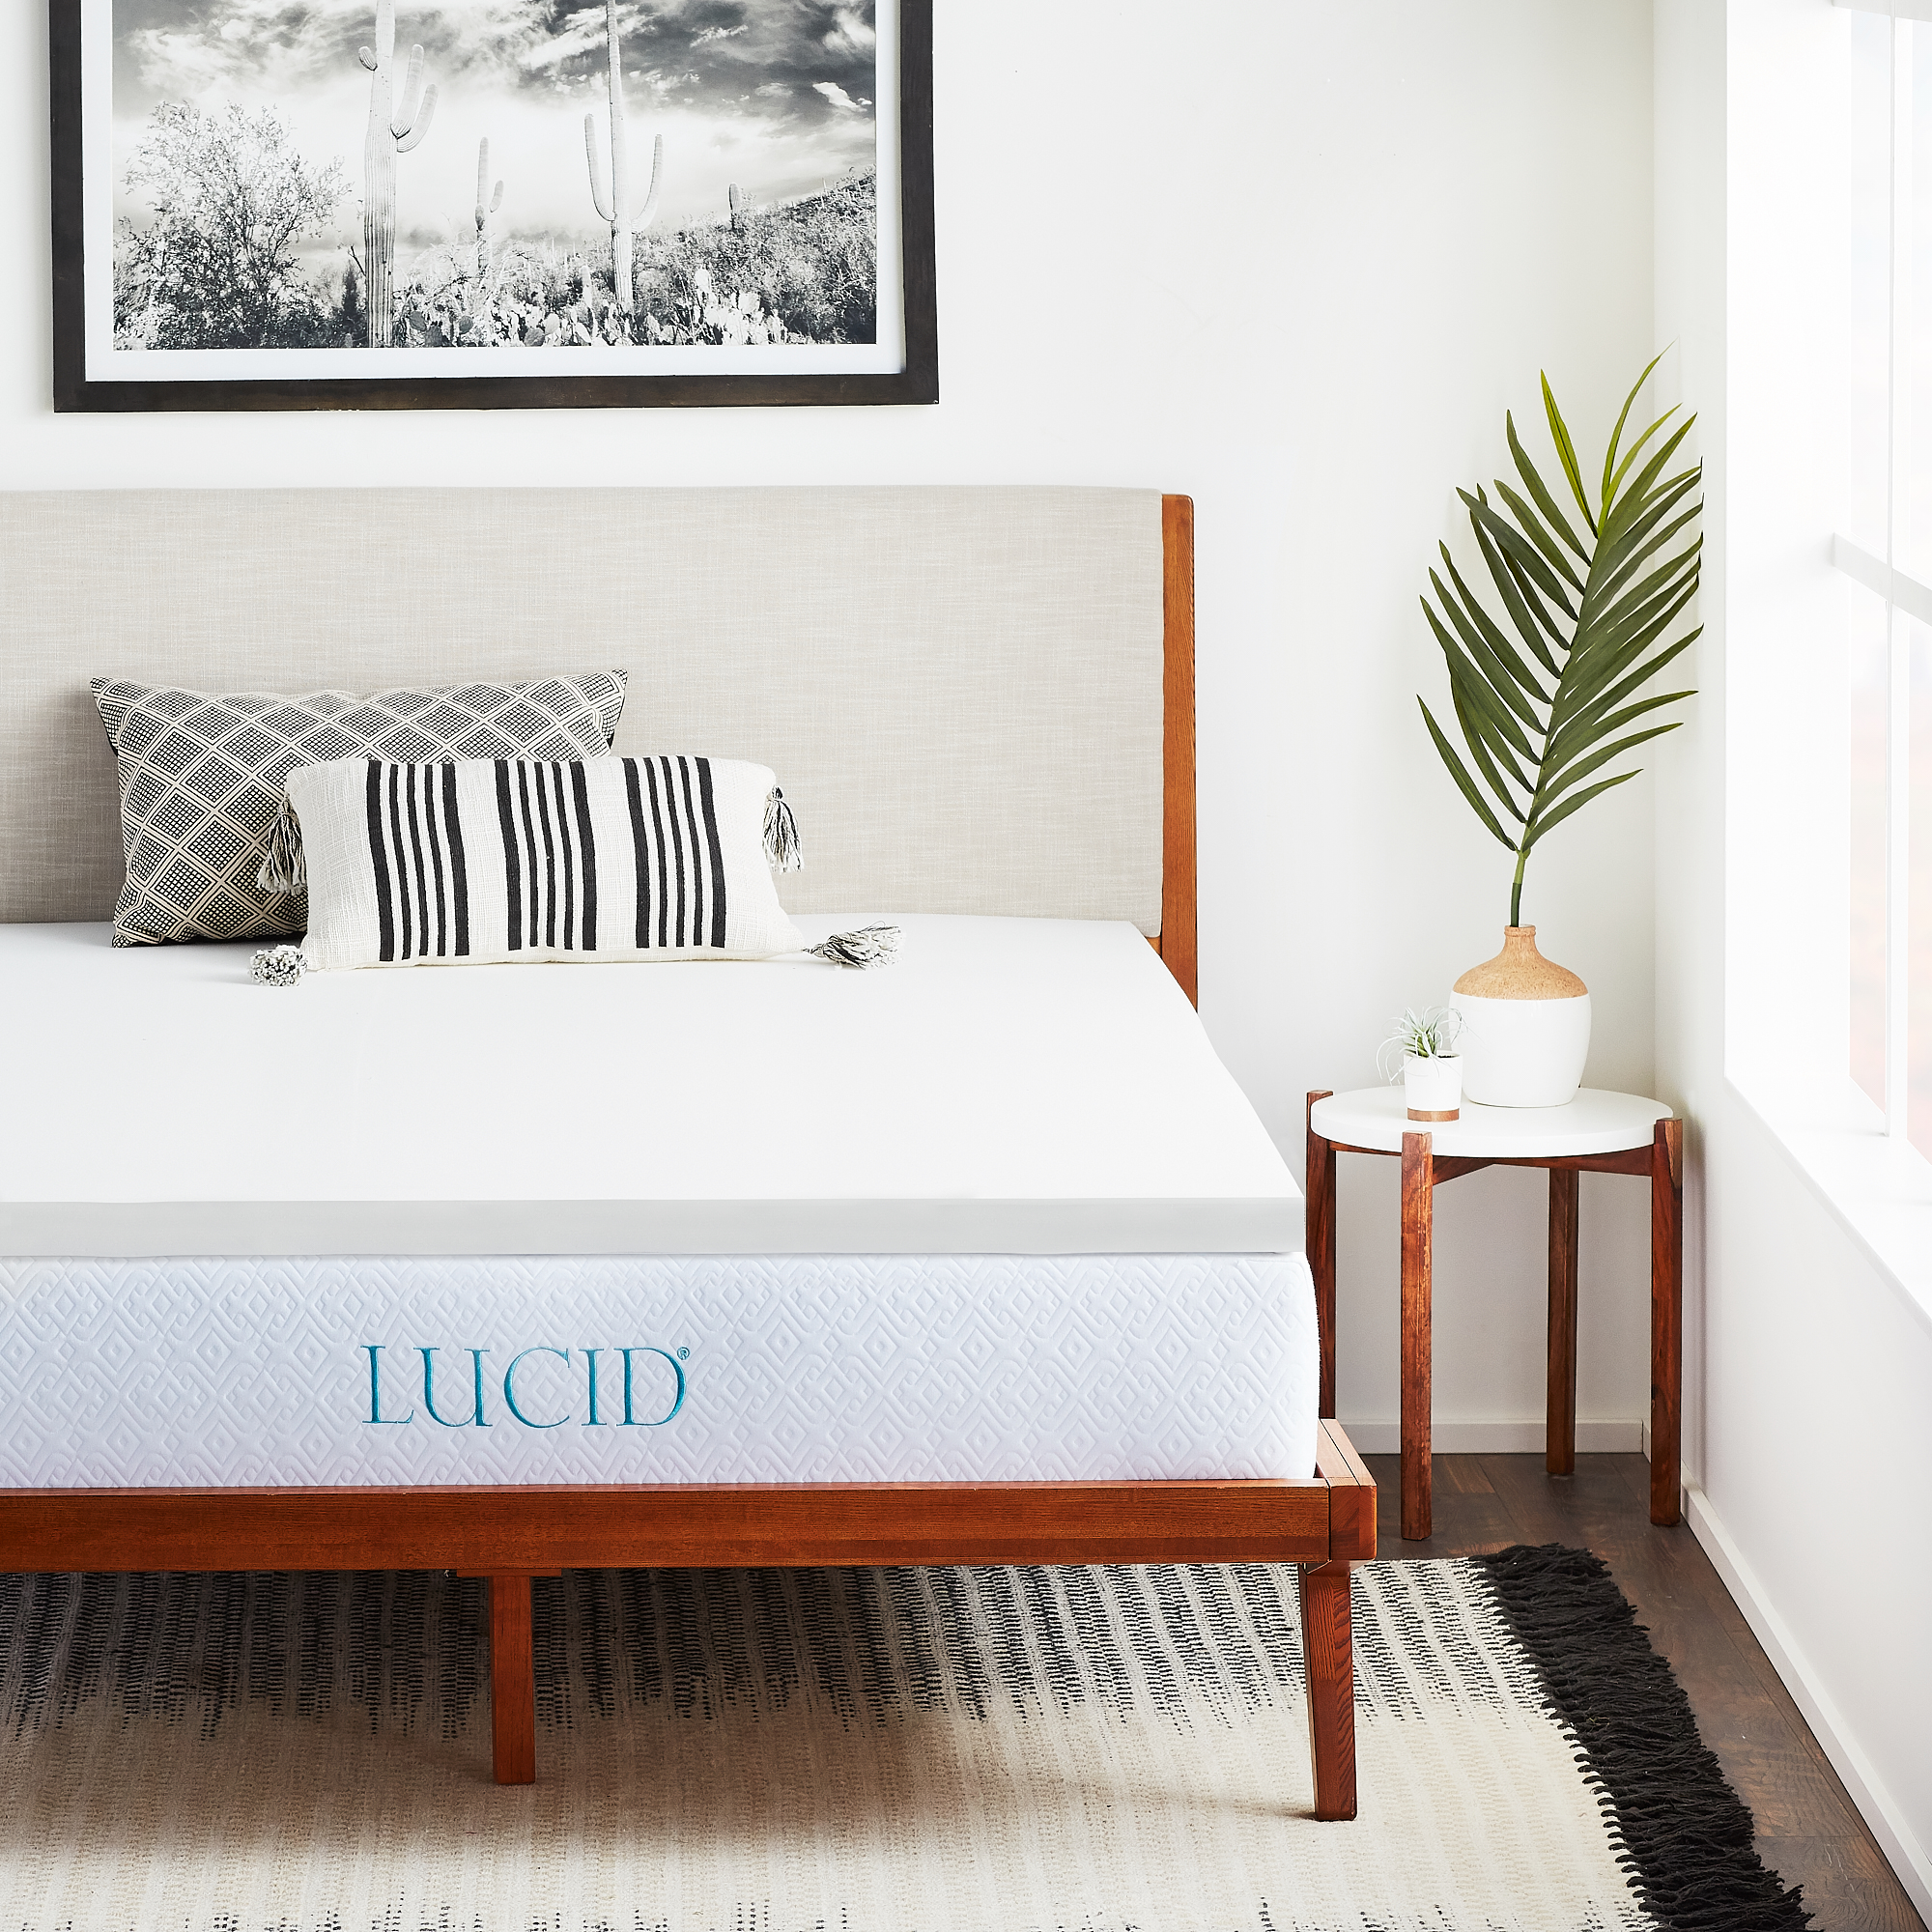 "Lucid 2"" Premium Soft Foam Mattress Topper, Multiple Sizes"